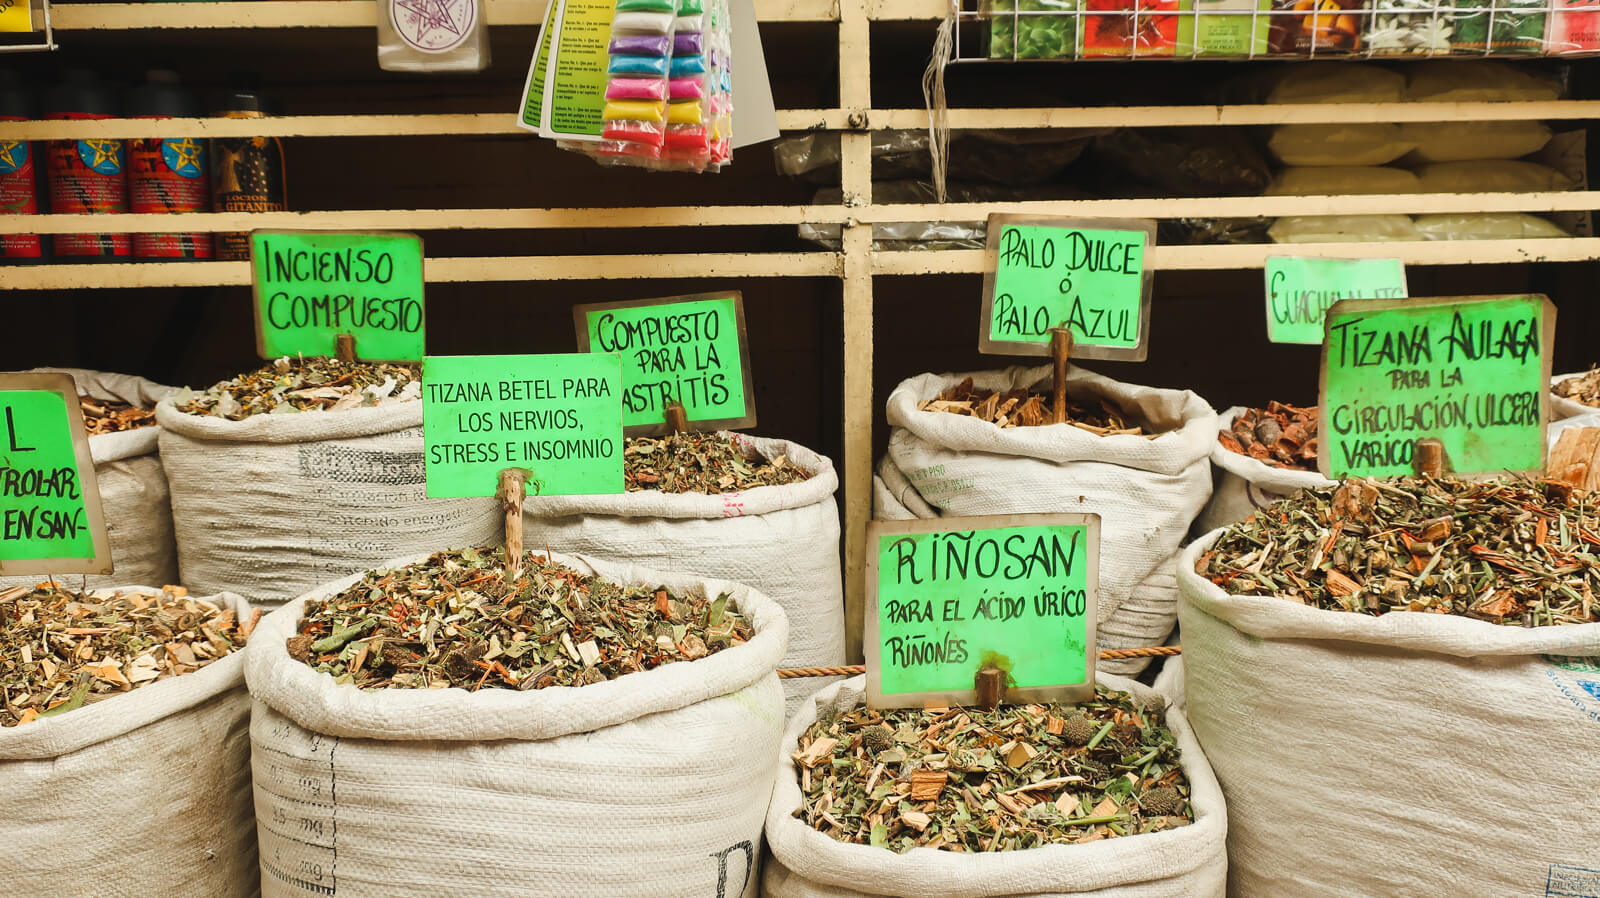 Medicinal herbs for homeopathic remedies sit in bags on a Mexico City market tour